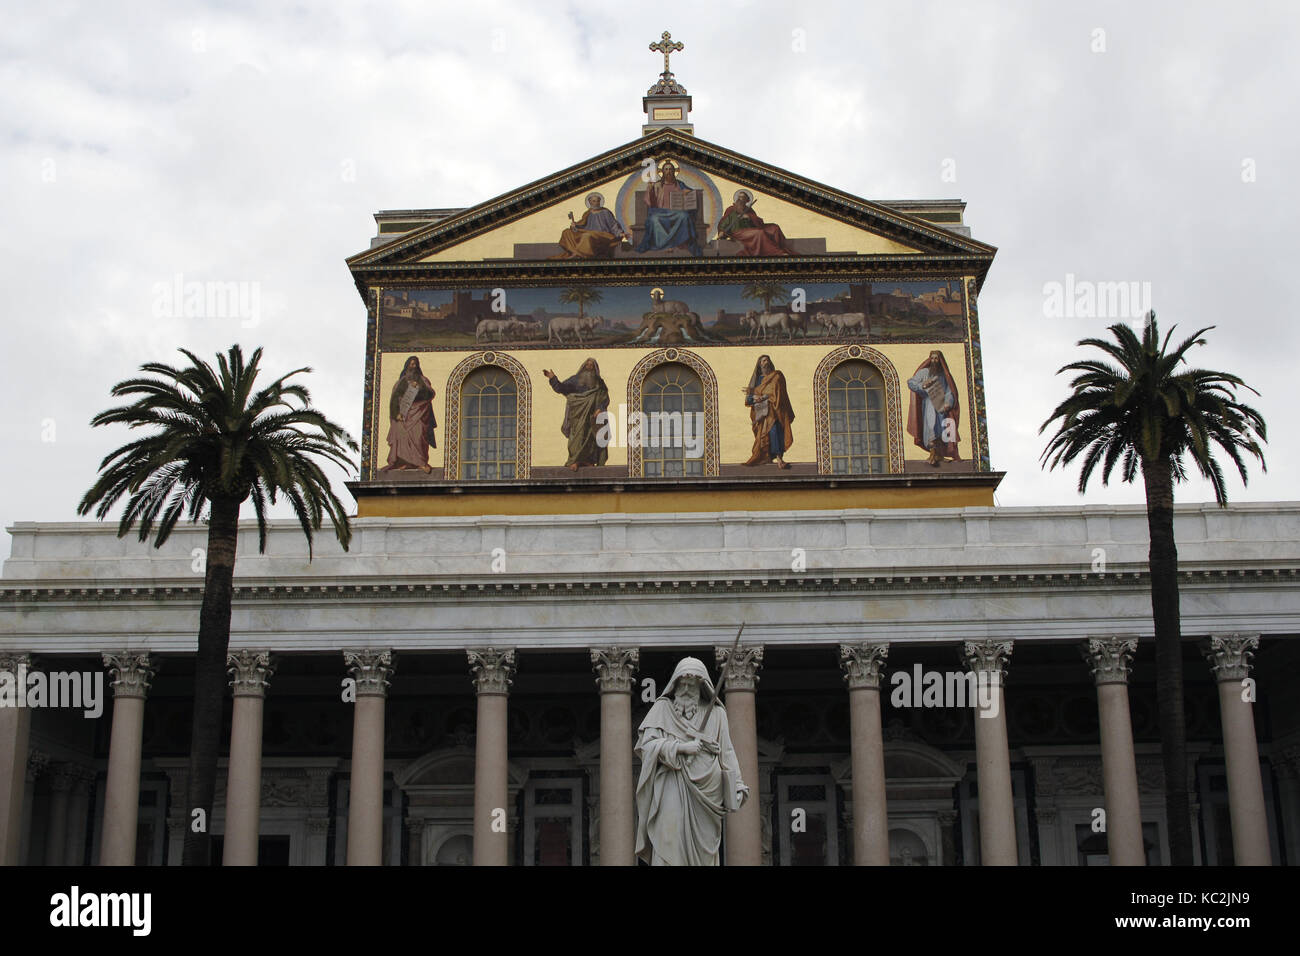 Italy. Rome. Exterior of Basilica of Saint Paul Outside the Walls. Reconstruction of Facade. Neoclassical style. - Stock Image